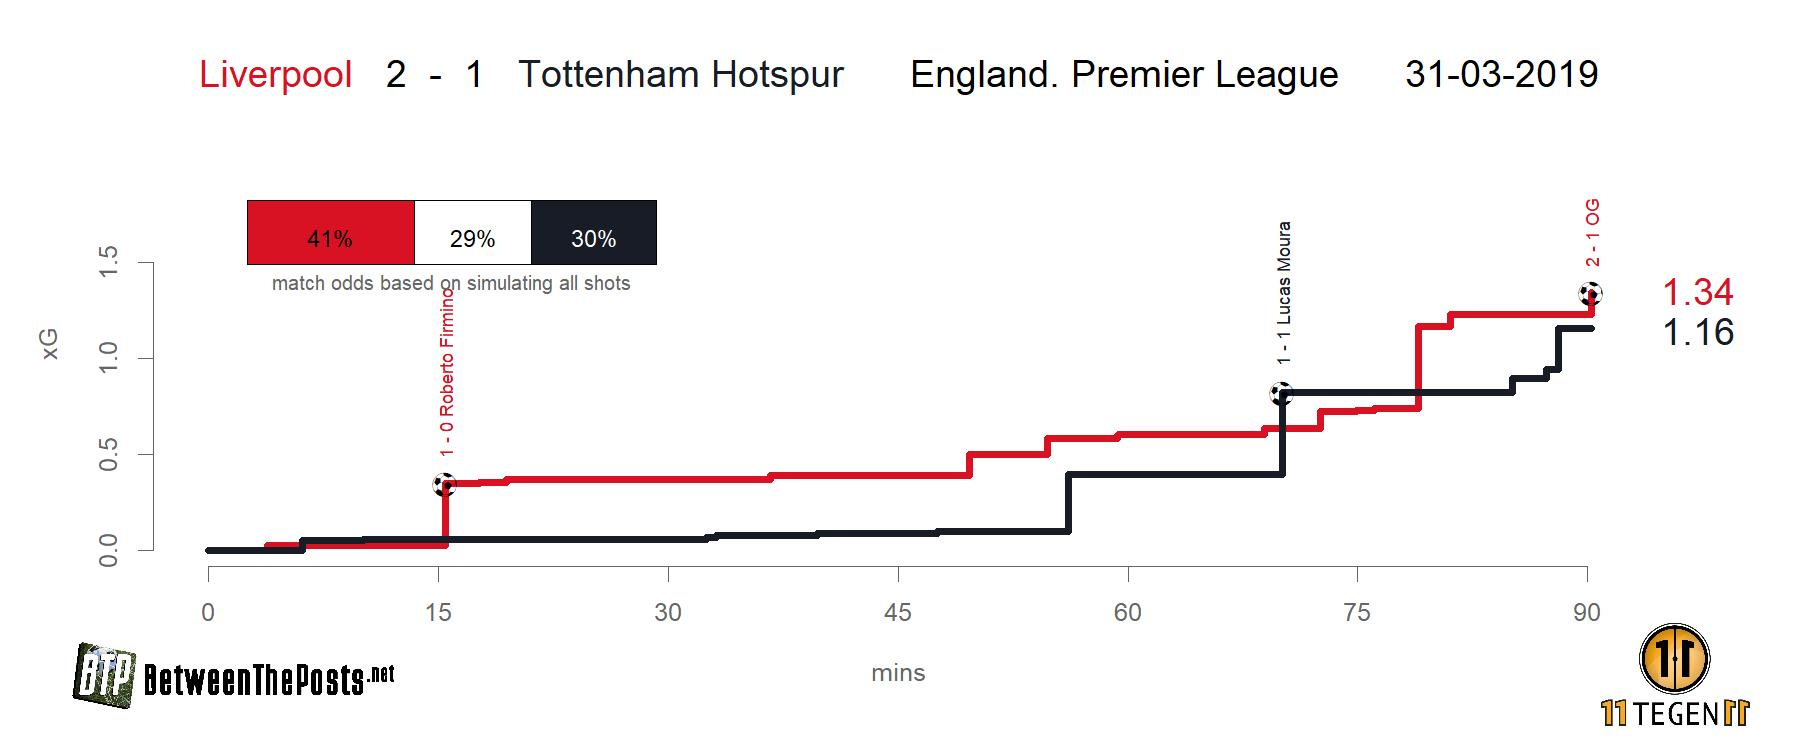 Expected goals plot Liverpool Tottenham Hotspur 2-1 Premier League